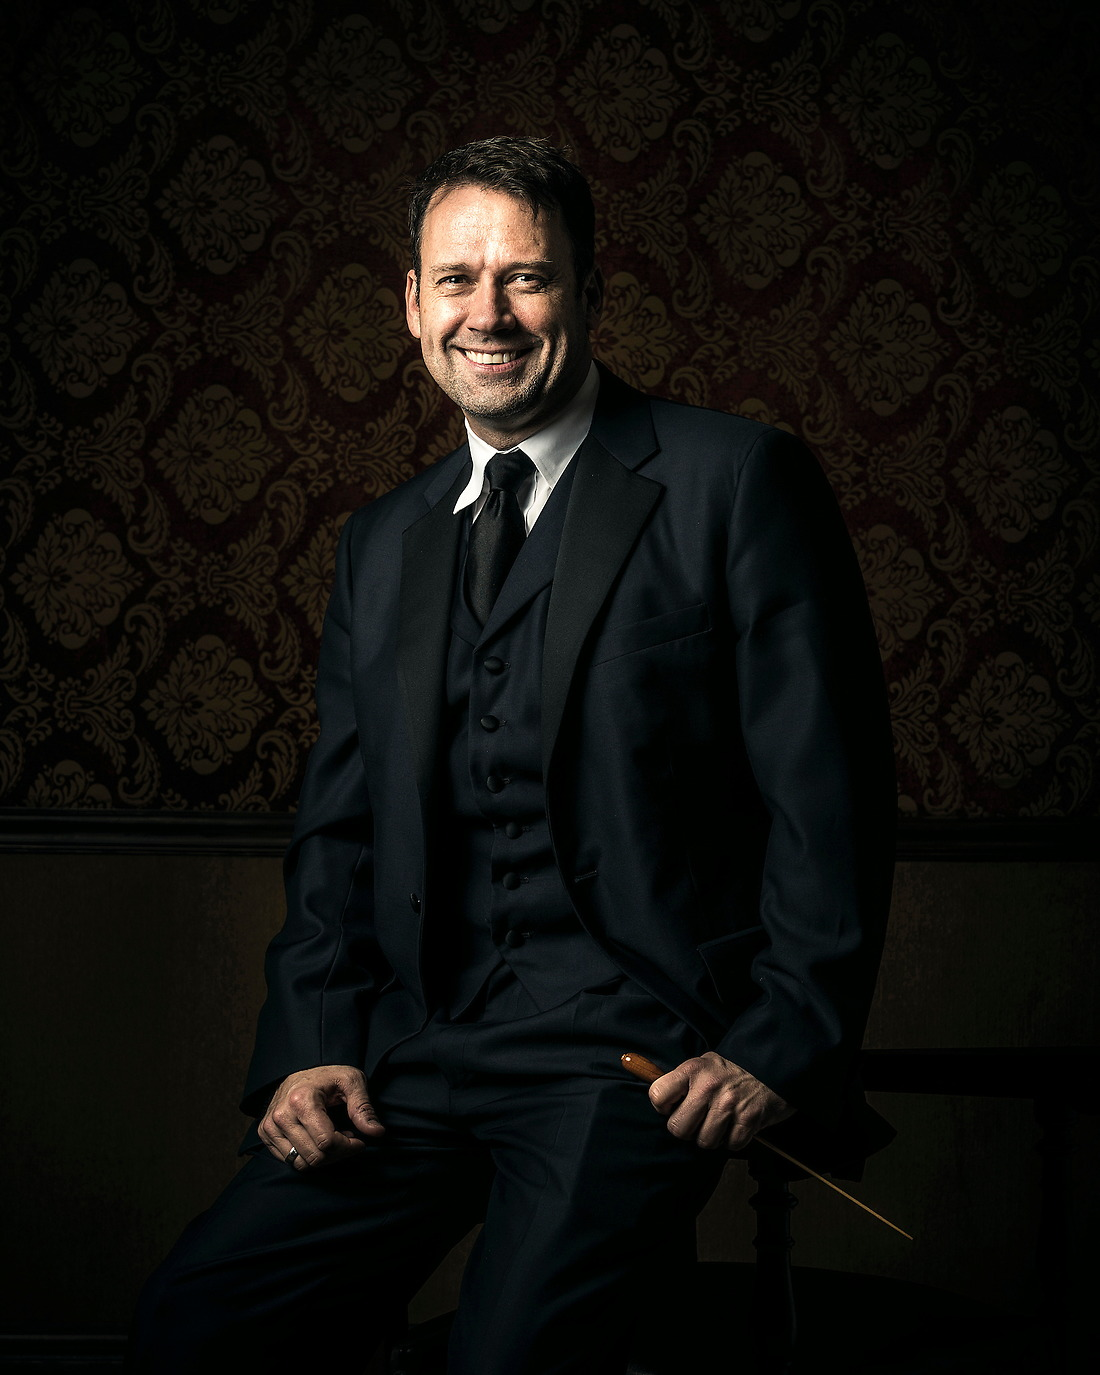 Robert Moody Music Director of Winston-Salem Symphony, Portland Symphony Orchestra, Artistic Director of Arizona Musicfest. — © Jeremy Lock/